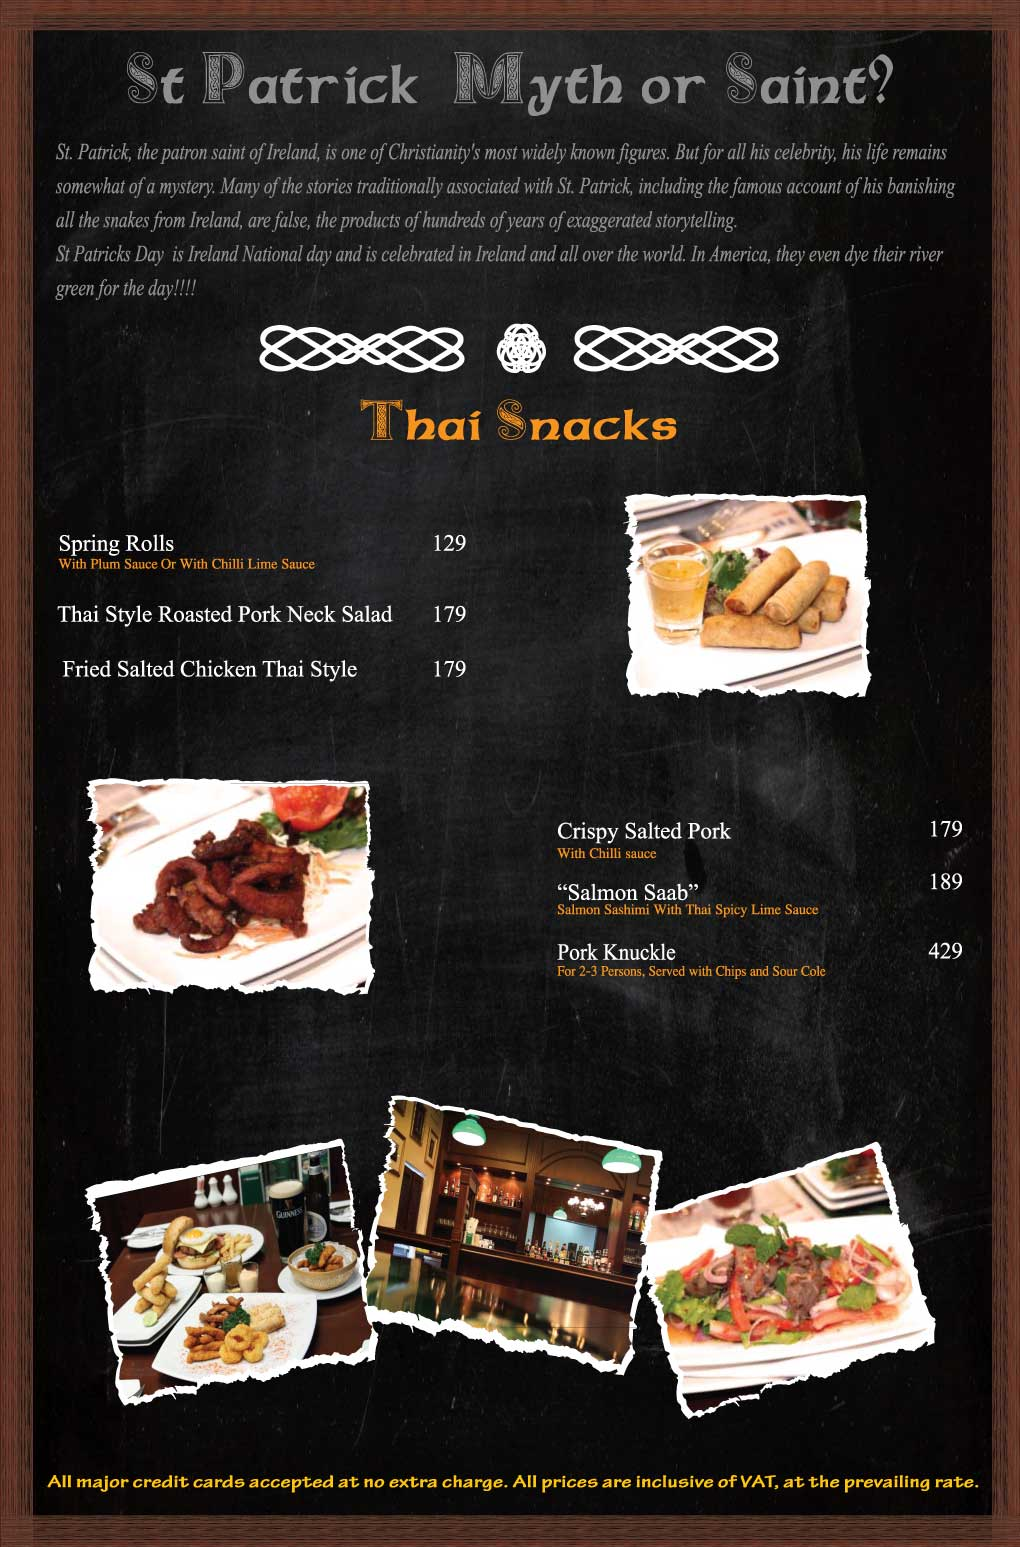 Flann Impact Food Menu Thai Snacks